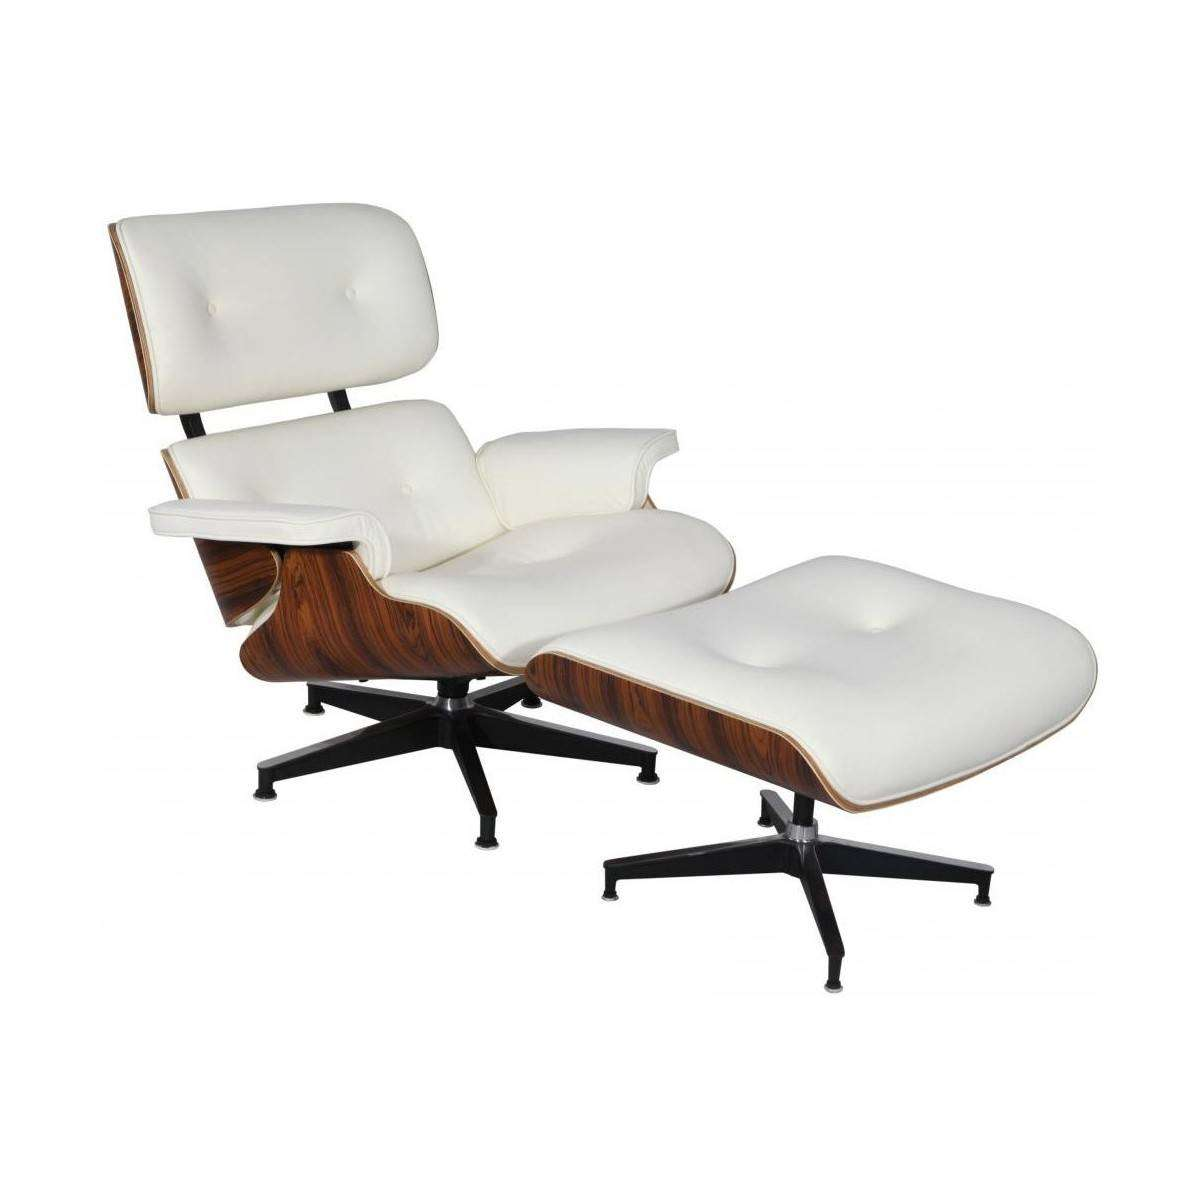 MOD Lounge Chair & Ottoman White Palisander